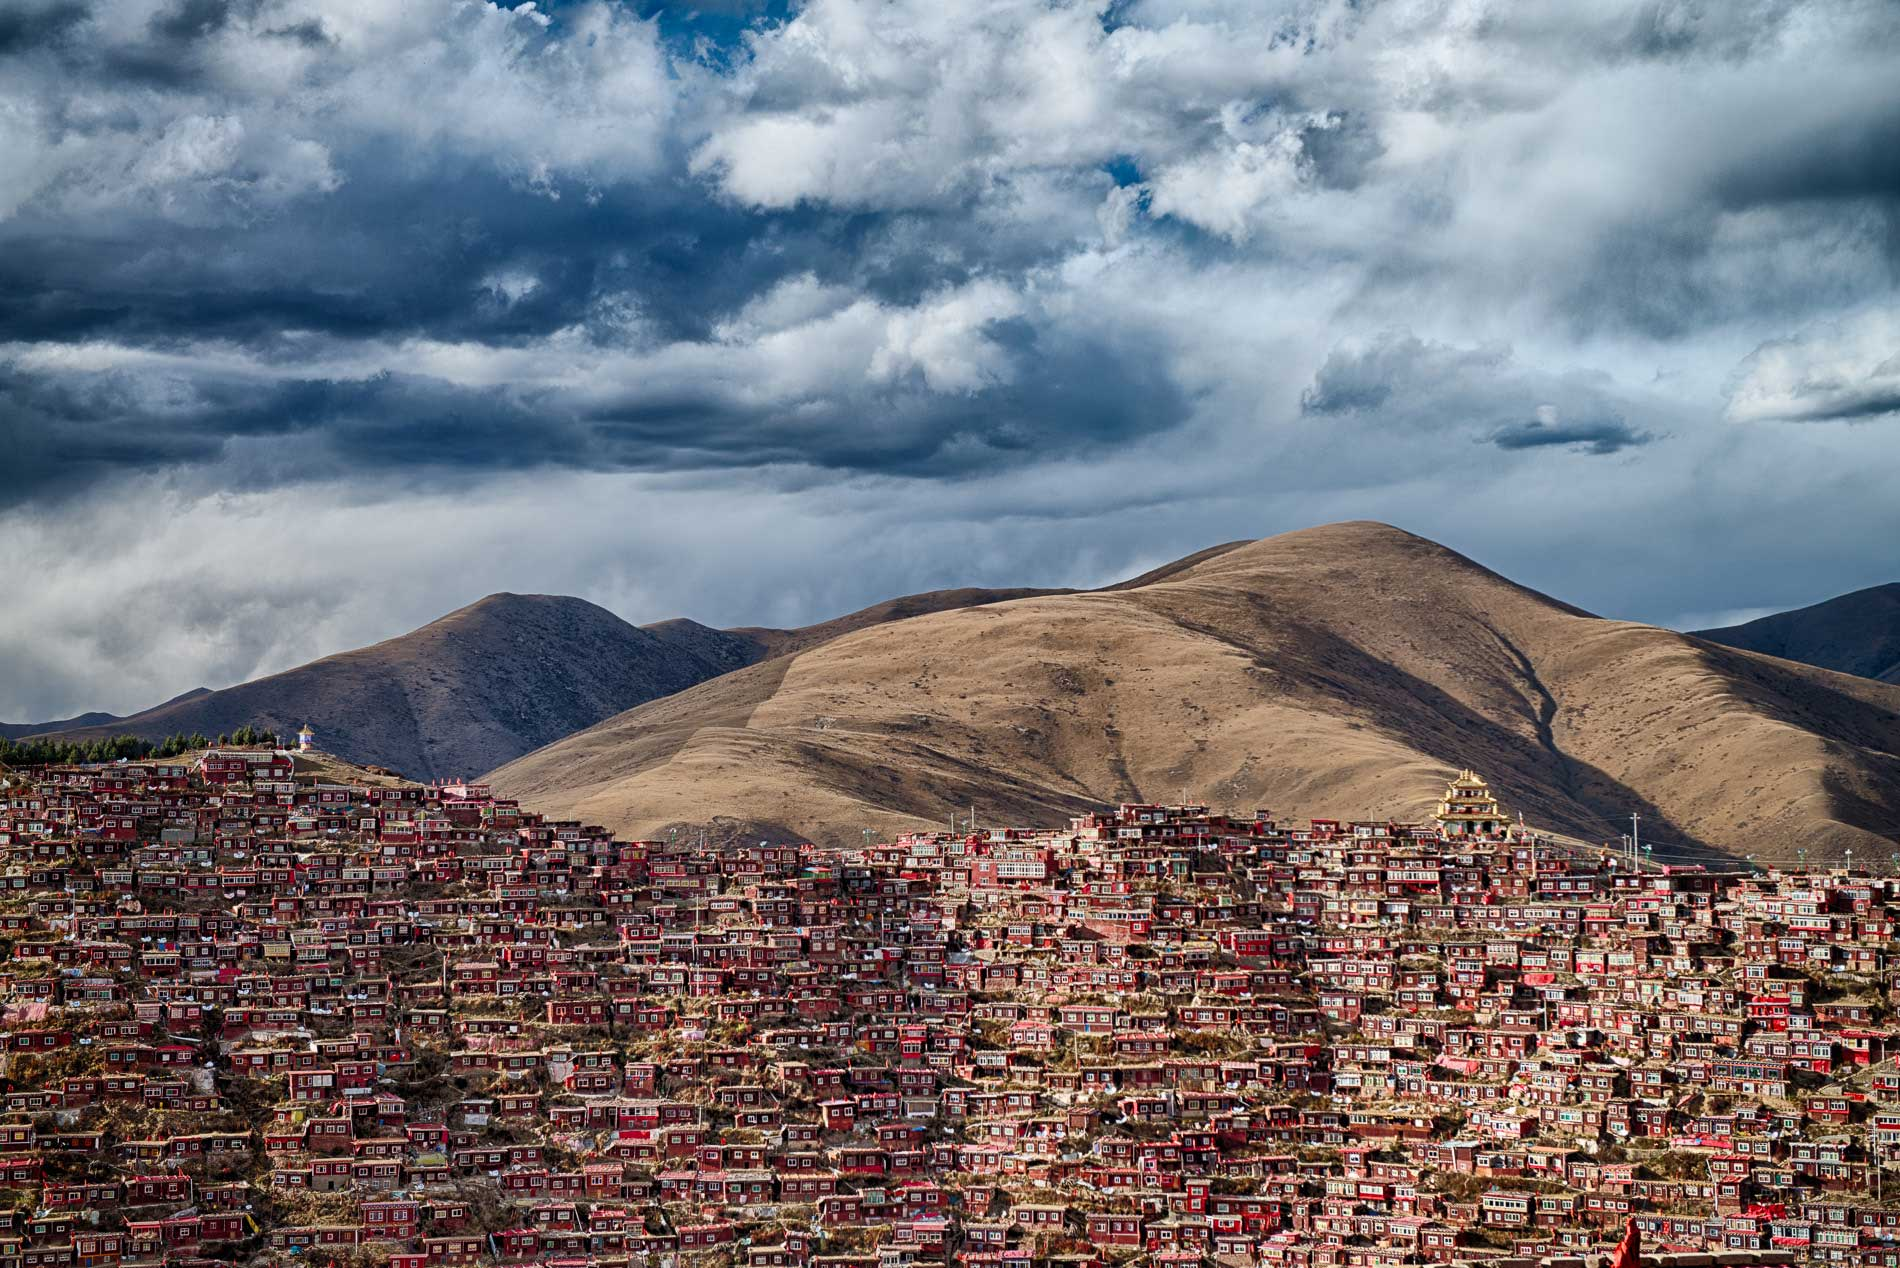 Home of 40 thousand Buddhist monks in China's Sichuan Province.